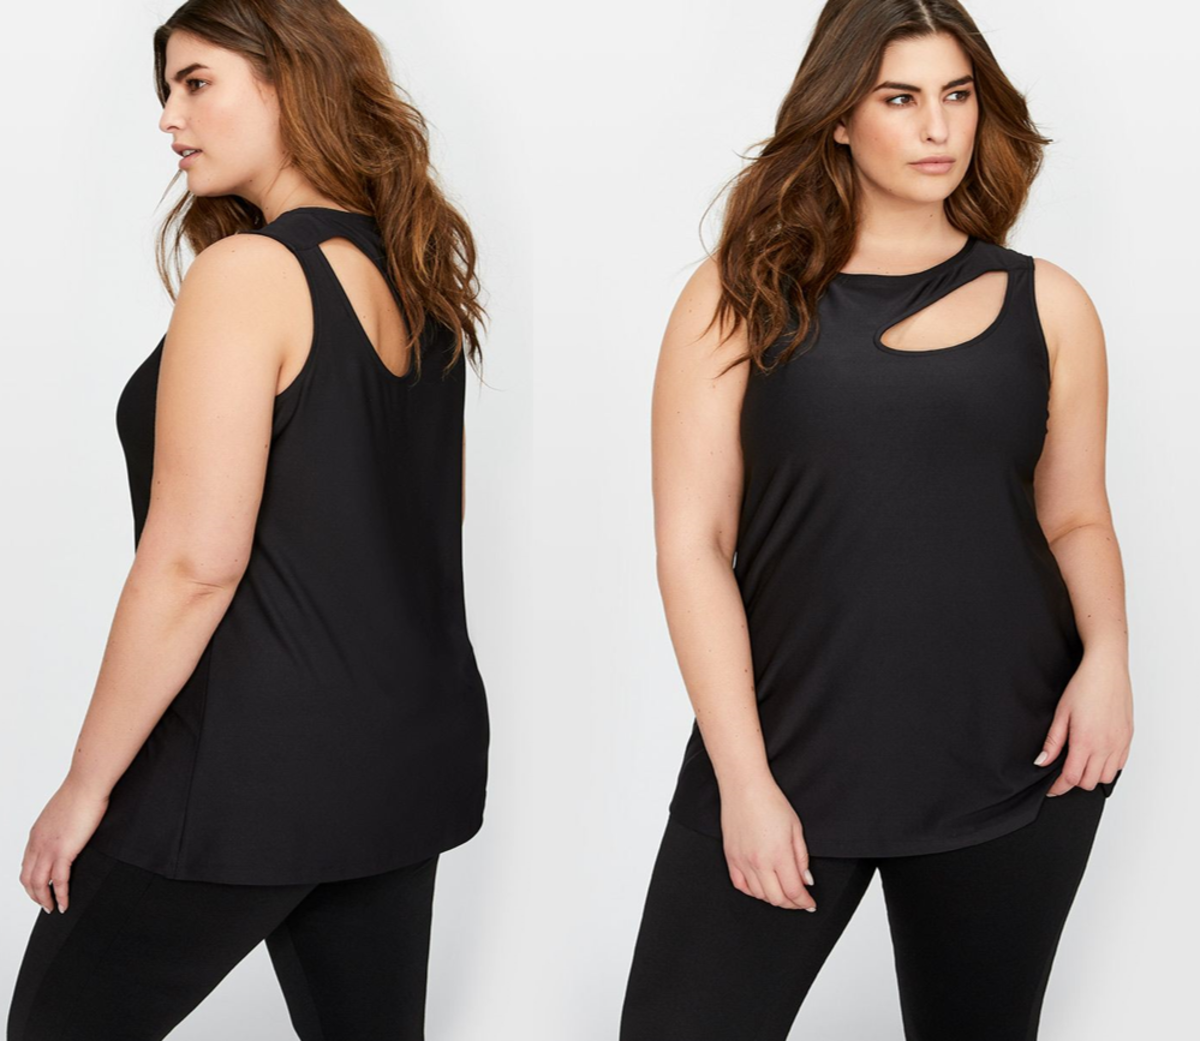 trendy sleeveless summer top: shirt-tail hem with front and back asymmetrical cut out